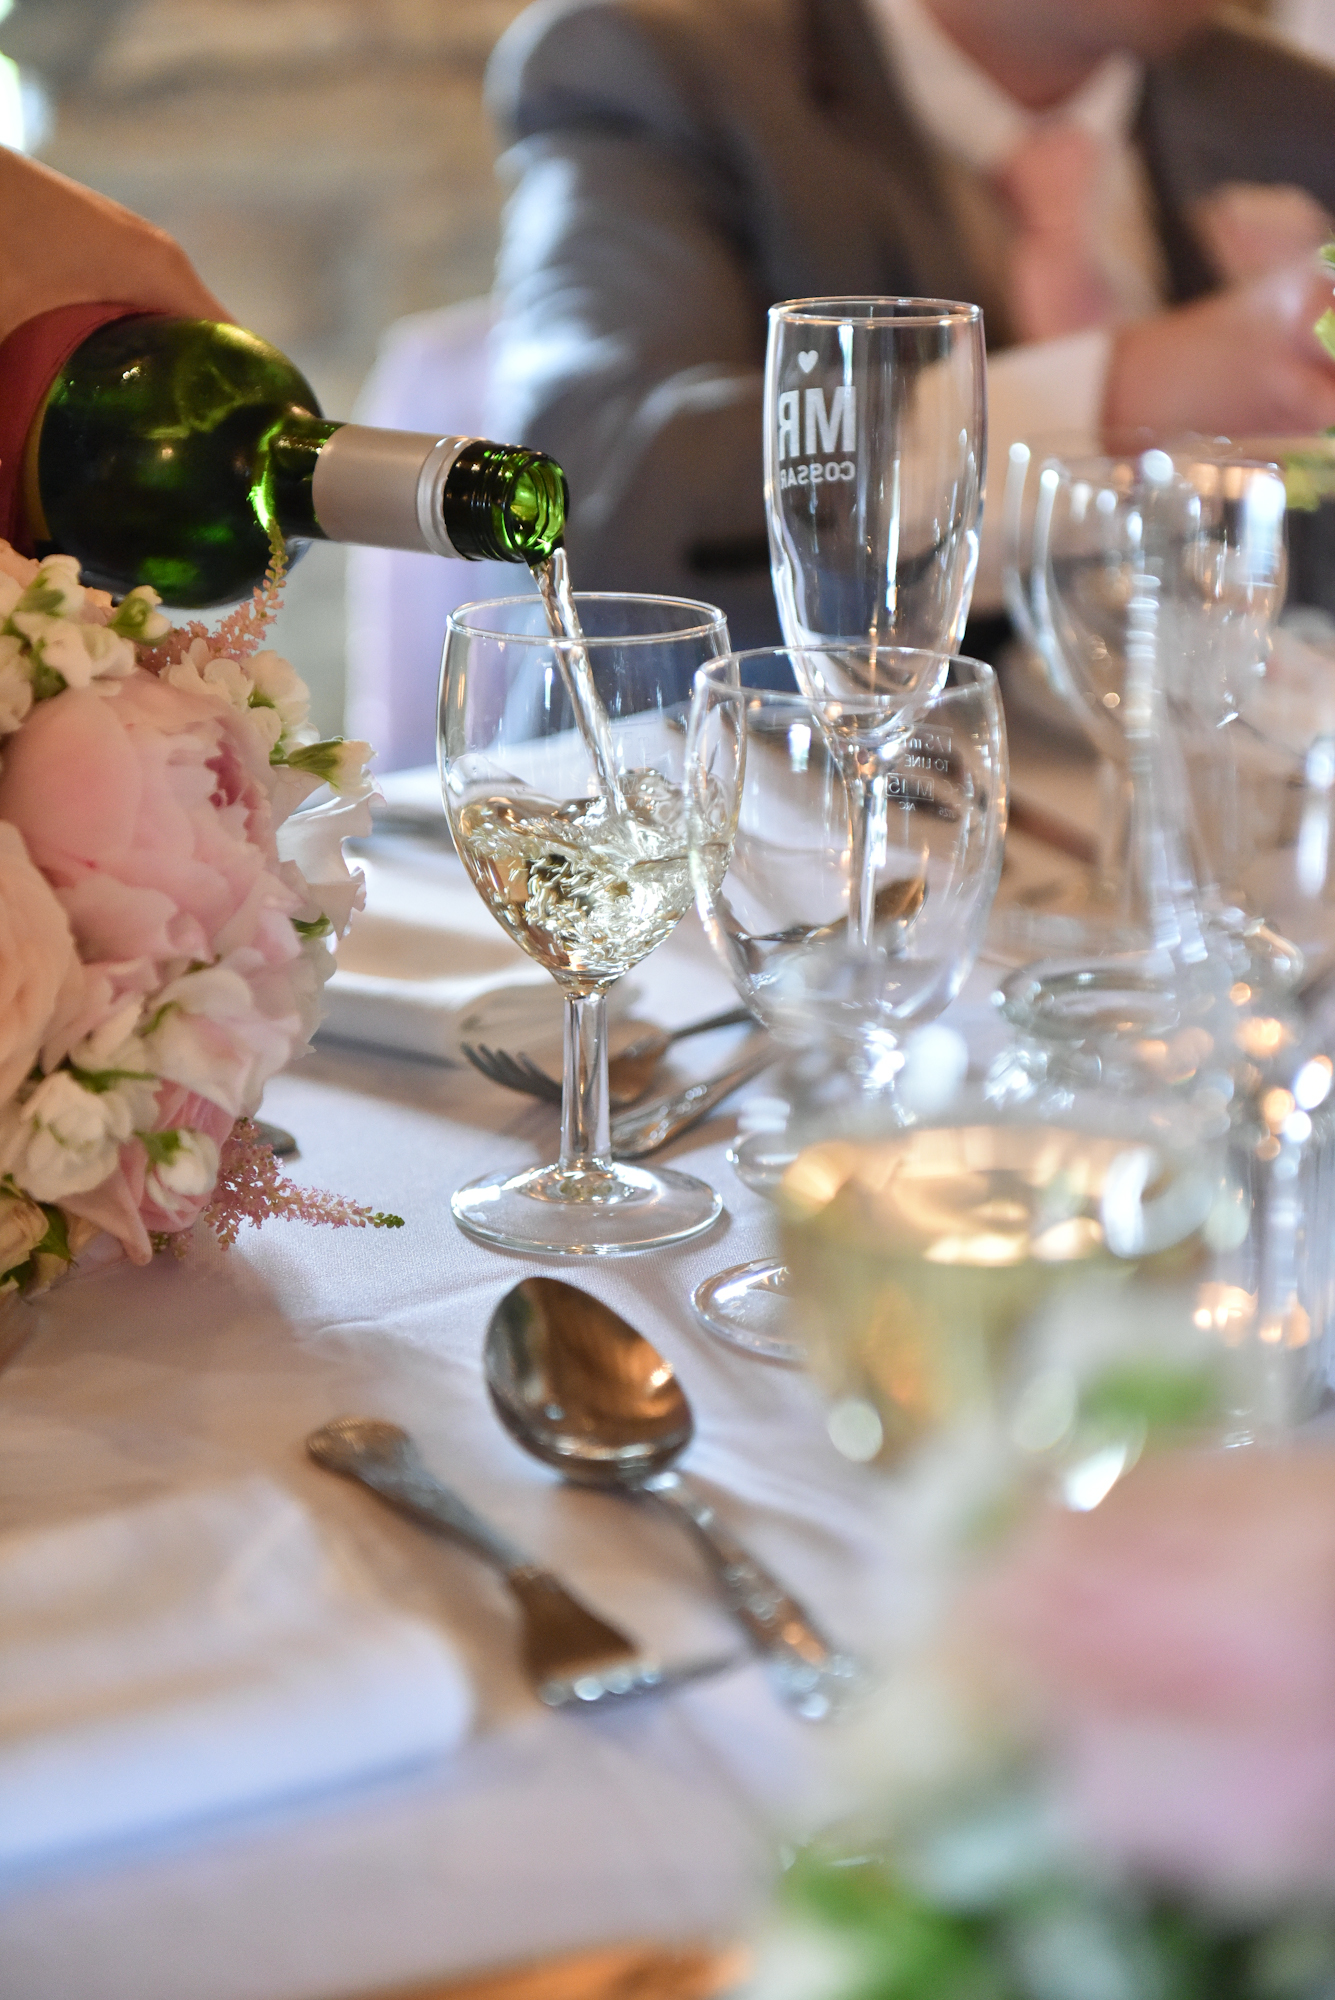 Wine pouring at wedding table